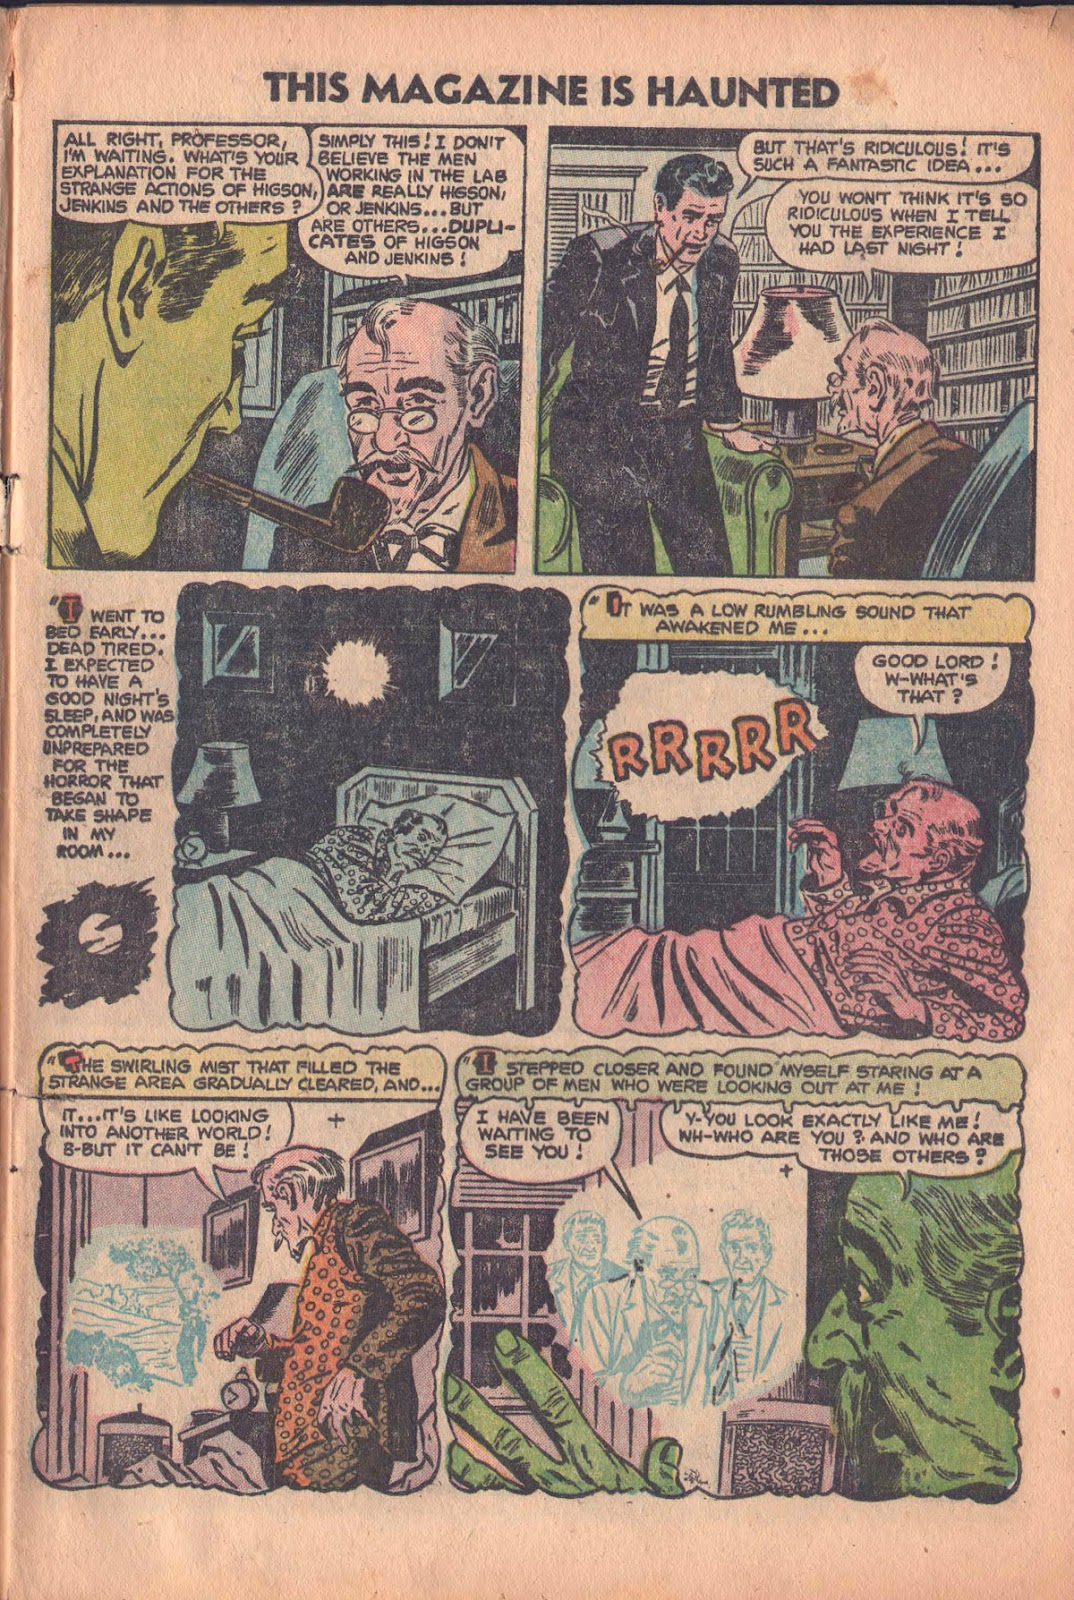 Read online This Magazine Is Haunted comic -  Issue #15 - 5